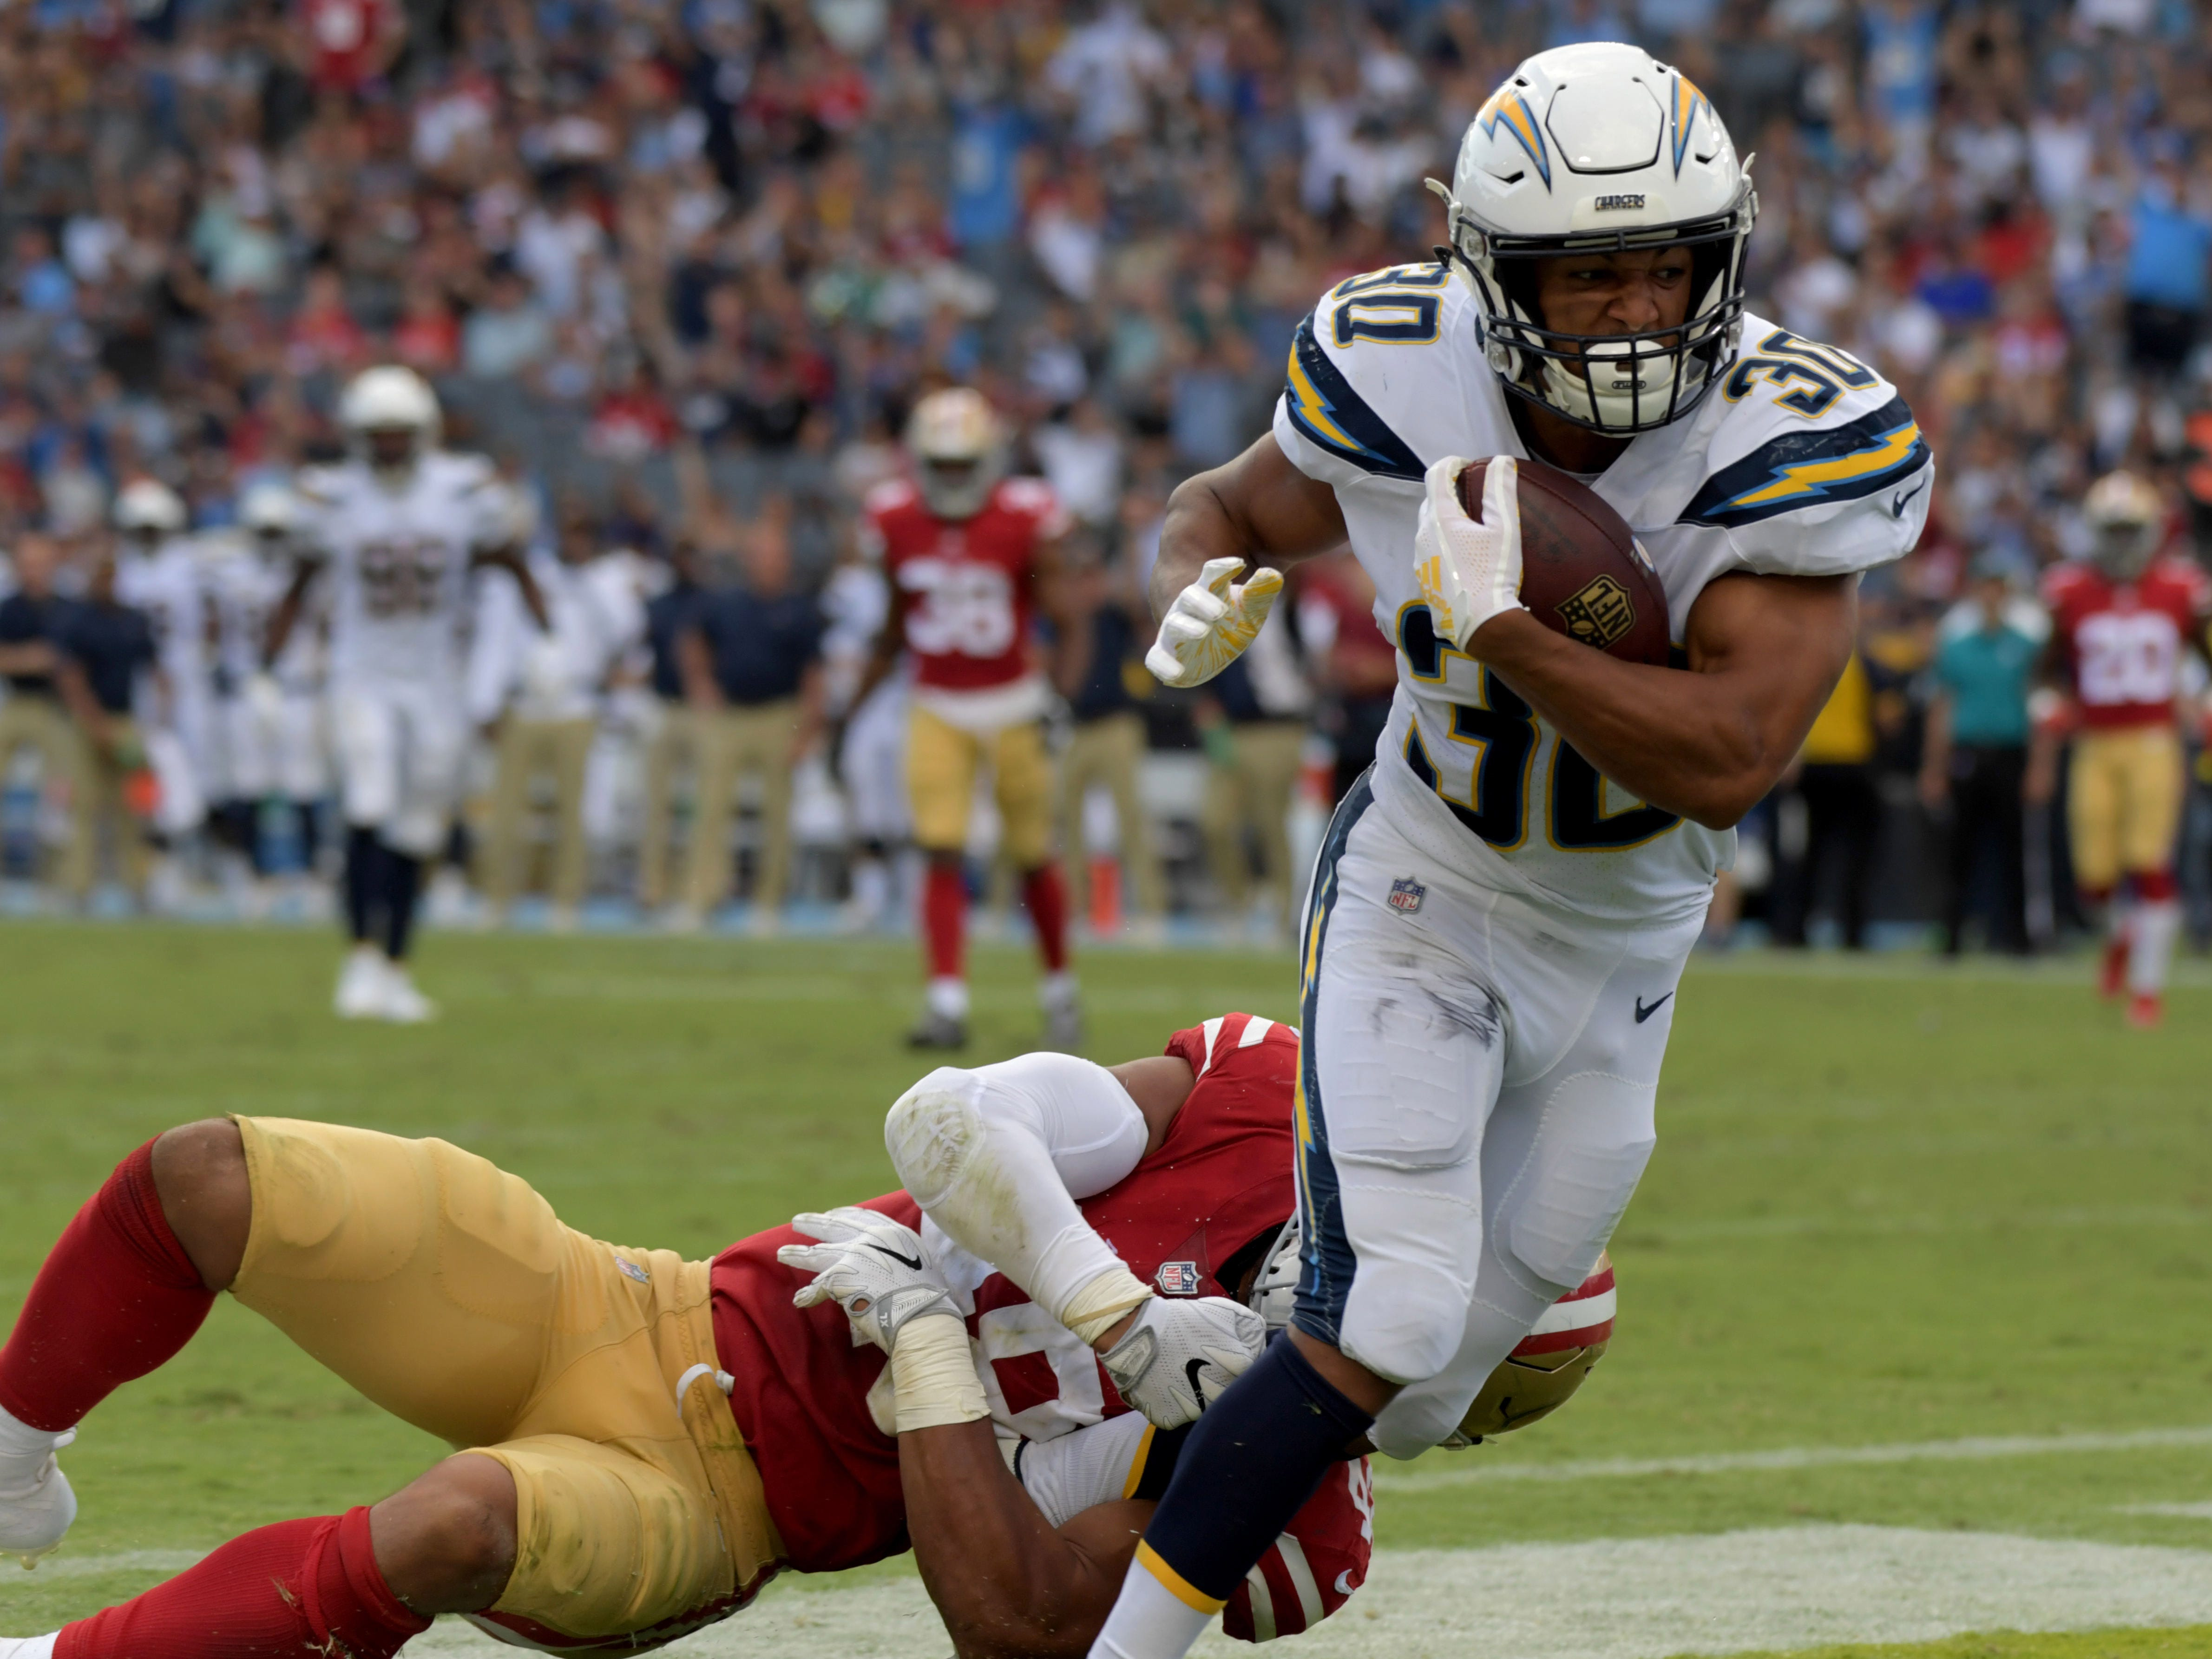 6. Chargers (11): Guess who ProFootballFocus' top-ranked RB is? If you said Melvin Gordon, you're wrong. It's actually Austin Ekeler. Watch him next time.